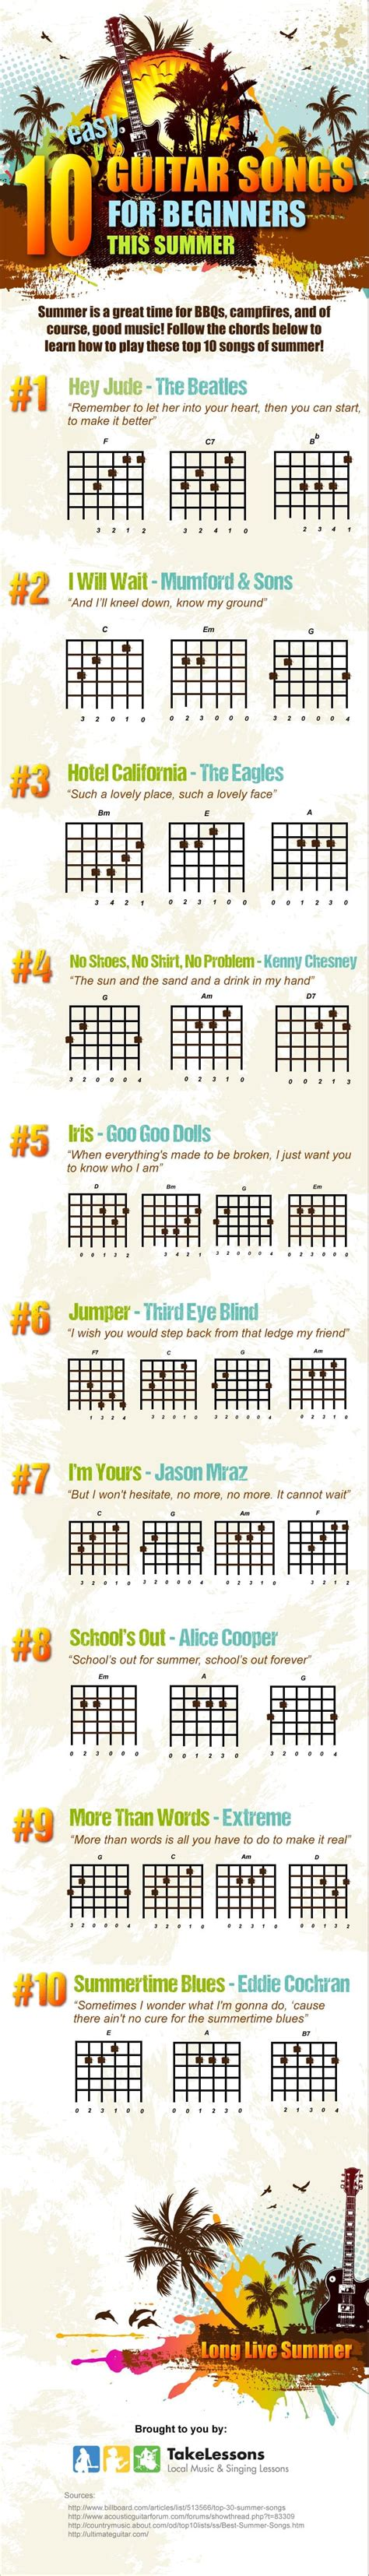 Learning songs on the guitar is essential for beginner guitar players. Easy Summertime Guitar Songs | 10 for Beginners | Guitar Adventures